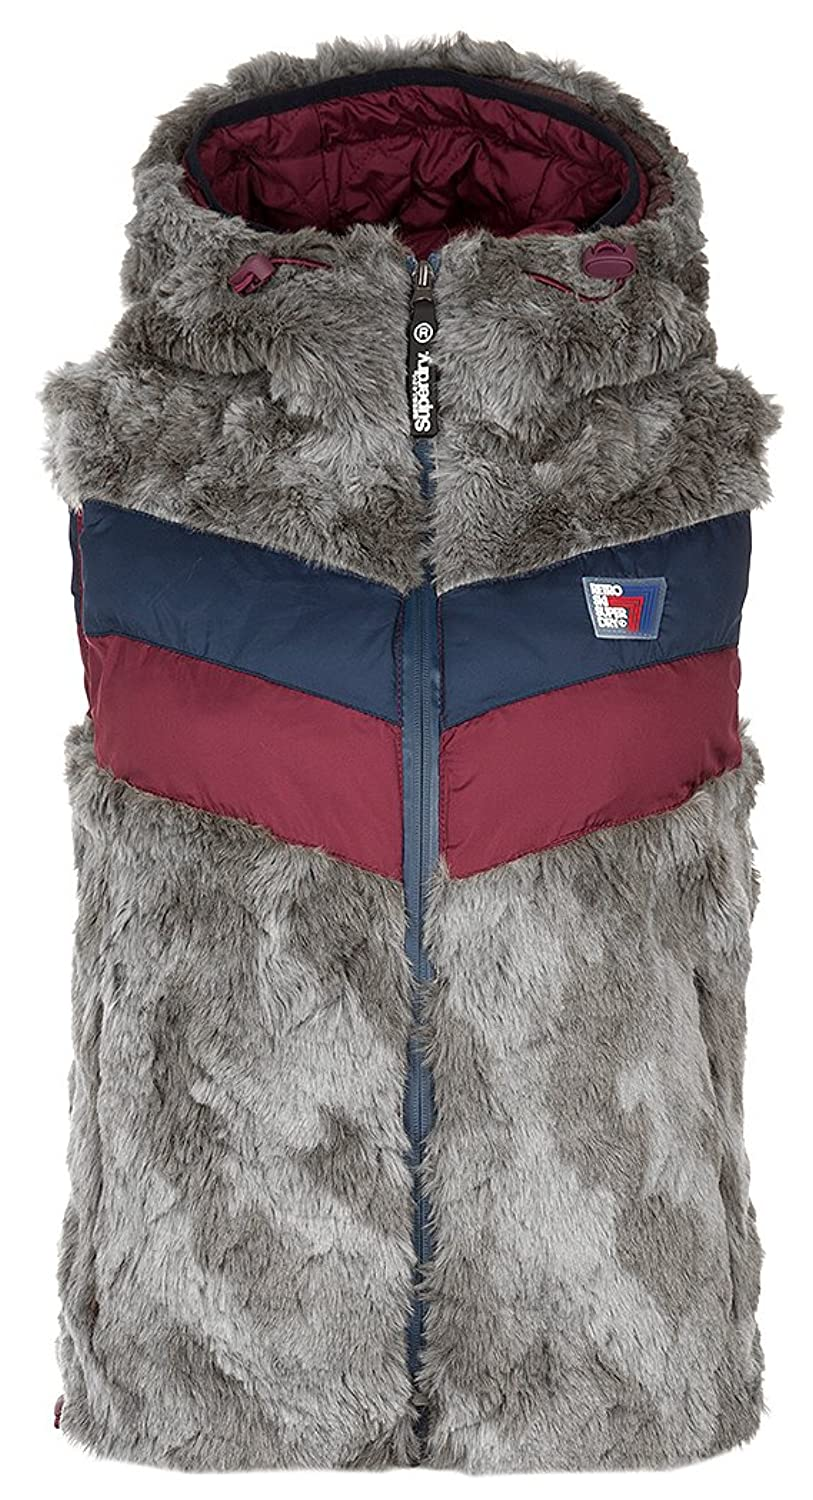 superdry damen weste antarctic apres ski gilet grau l 40 jetzt bestellen. Black Bedroom Furniture Sets. Home Design Ideas